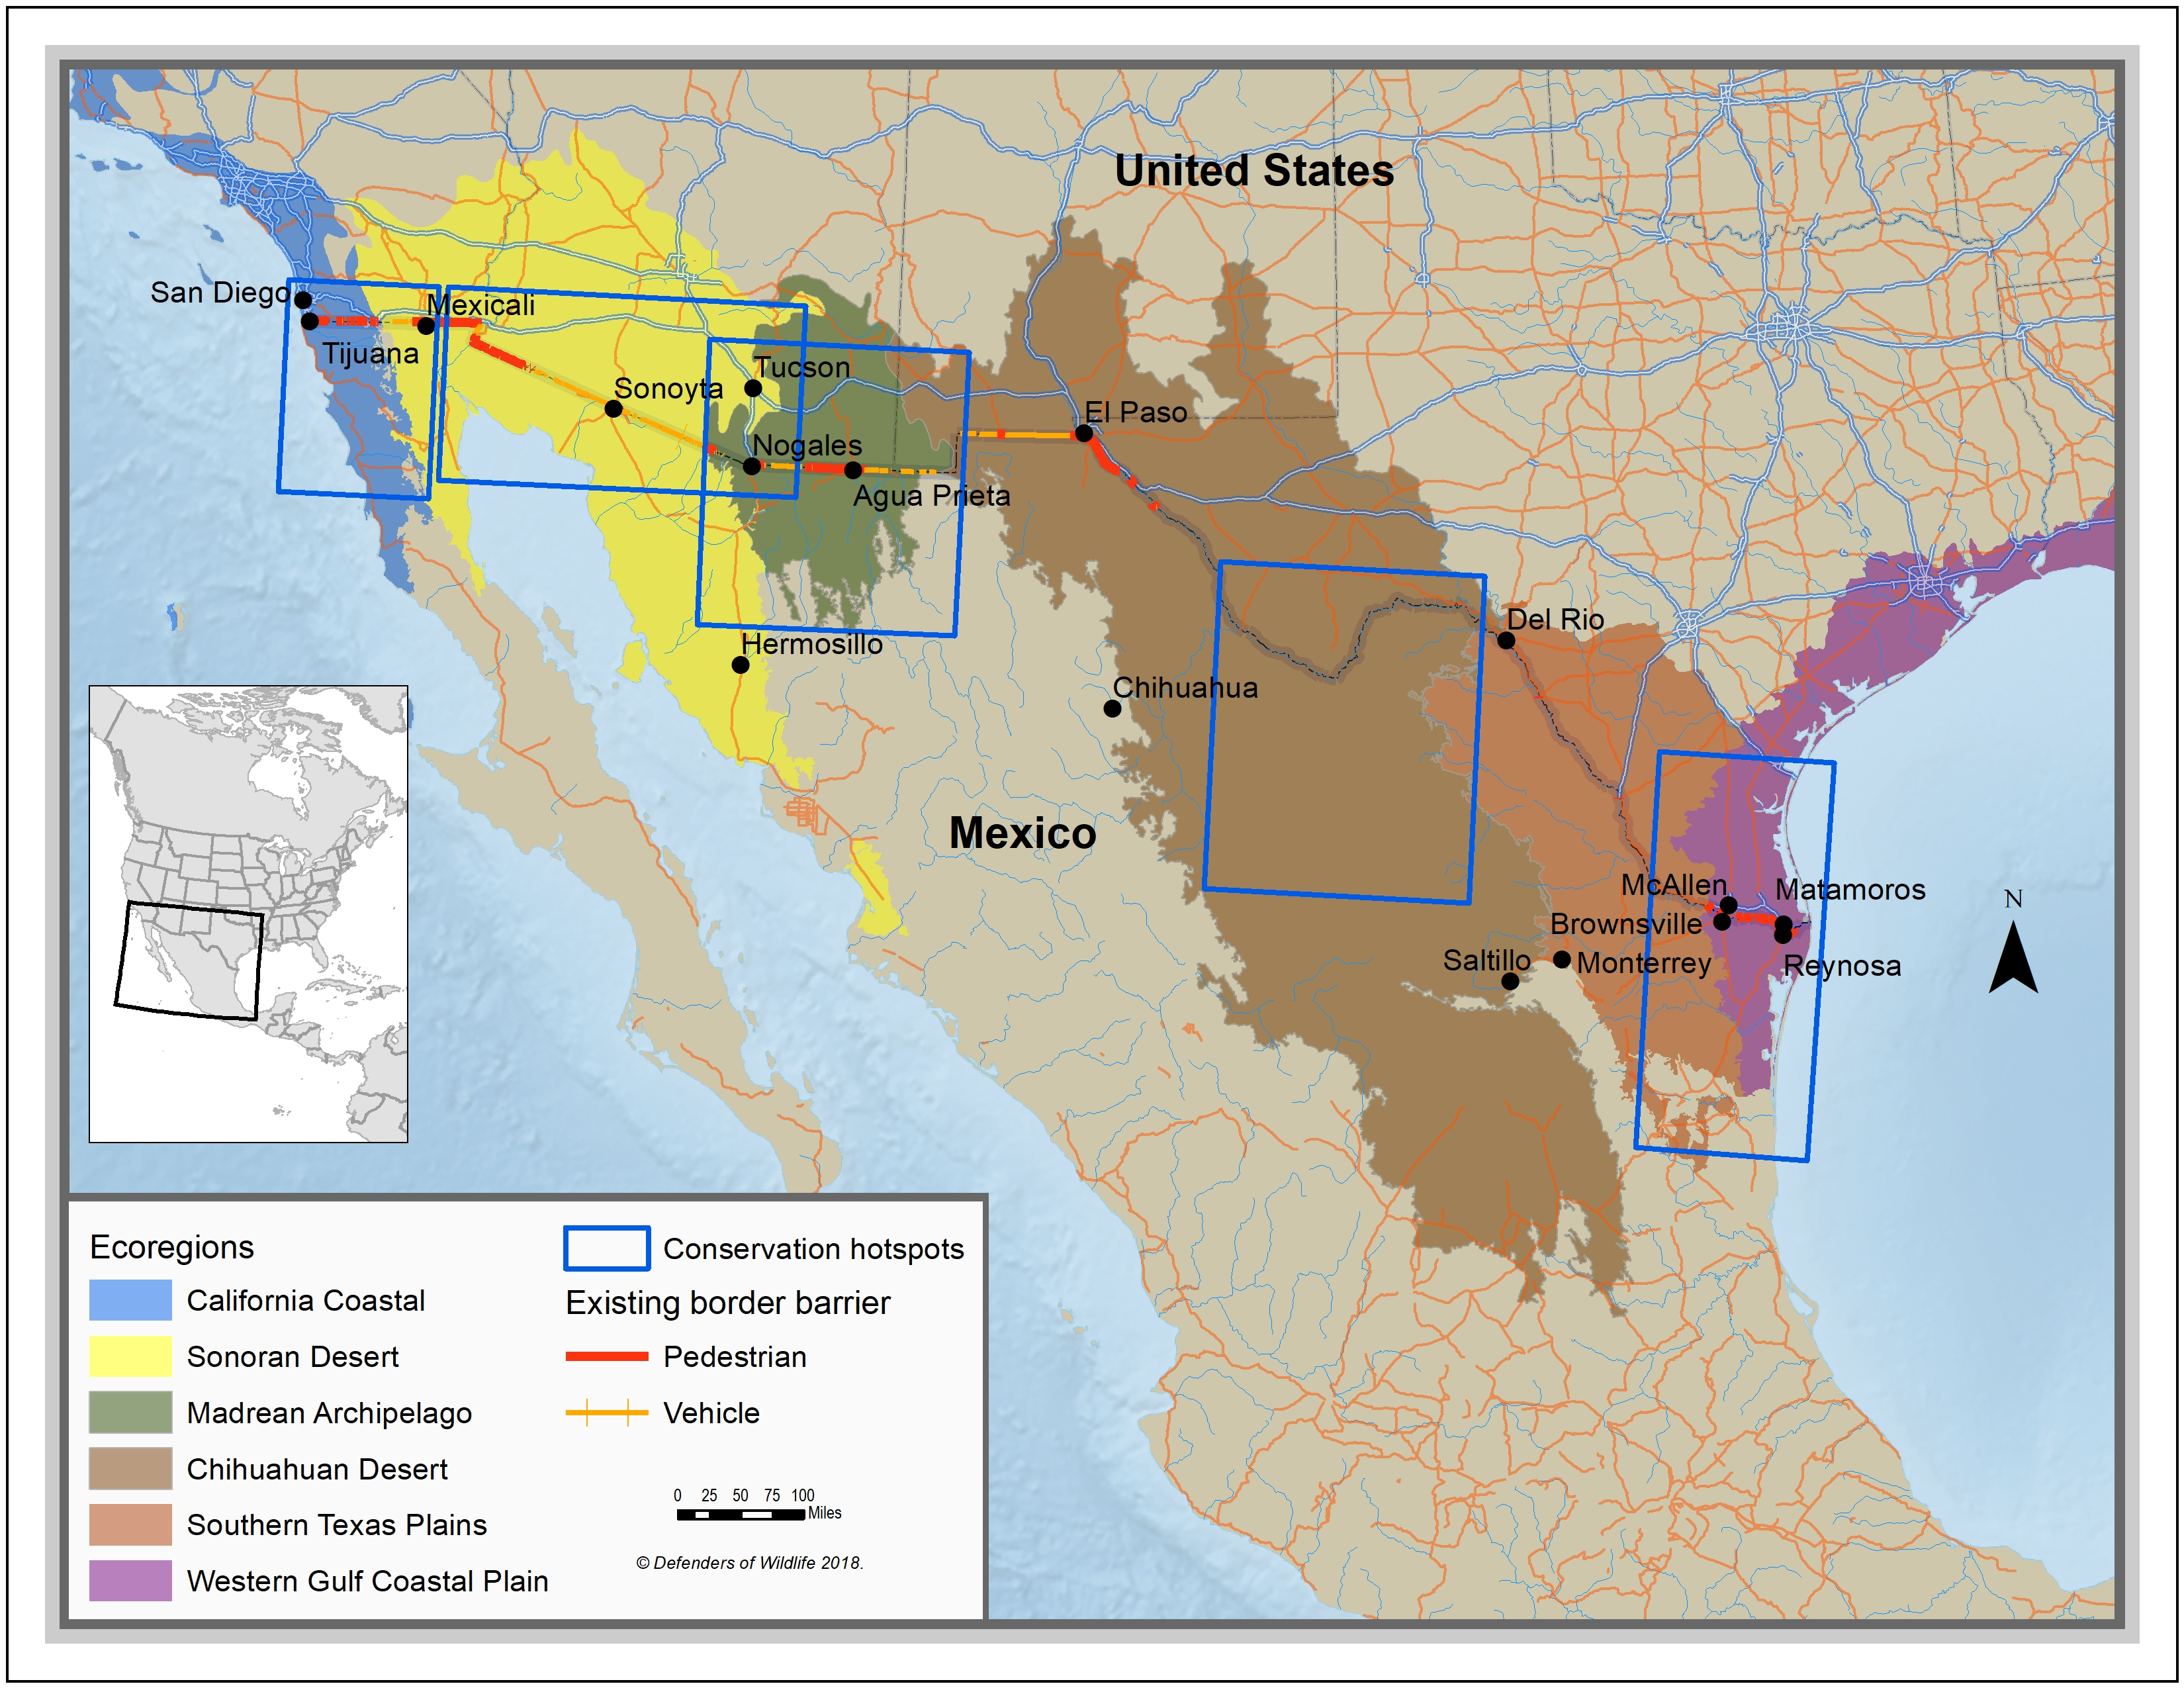 Border wall hotspots map